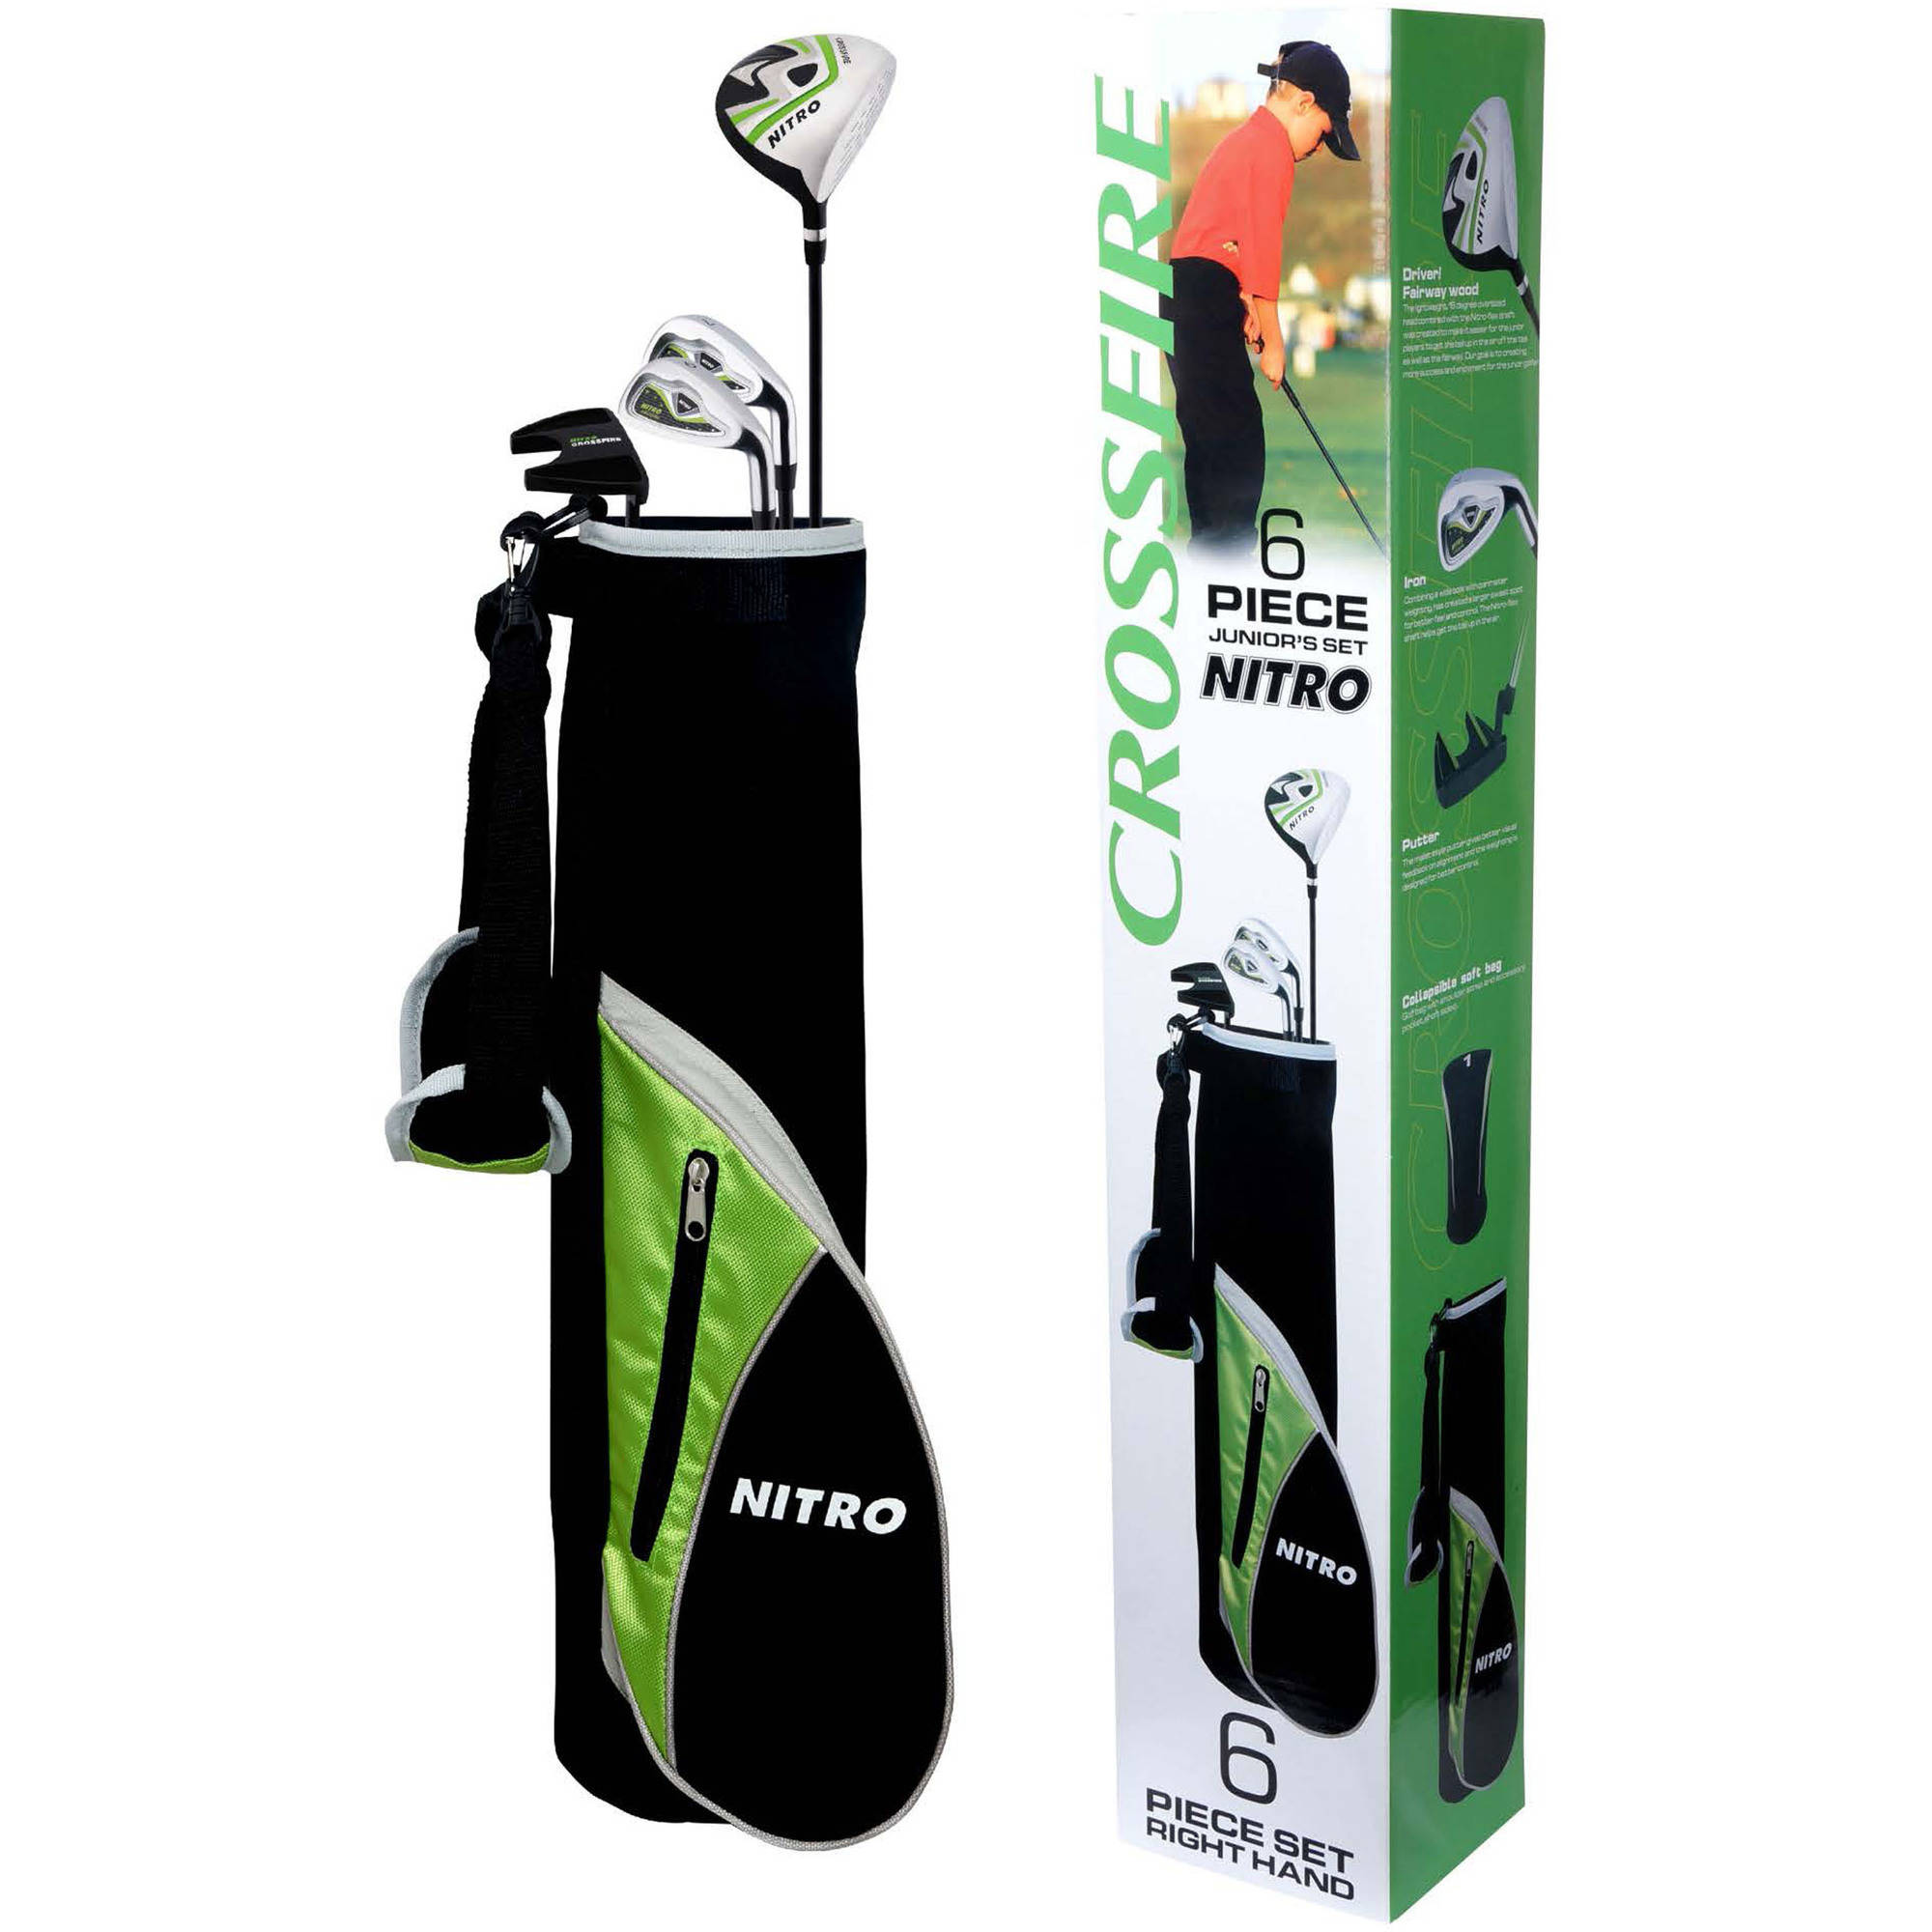 Nitro Golf Set, Junior, 8-Piece